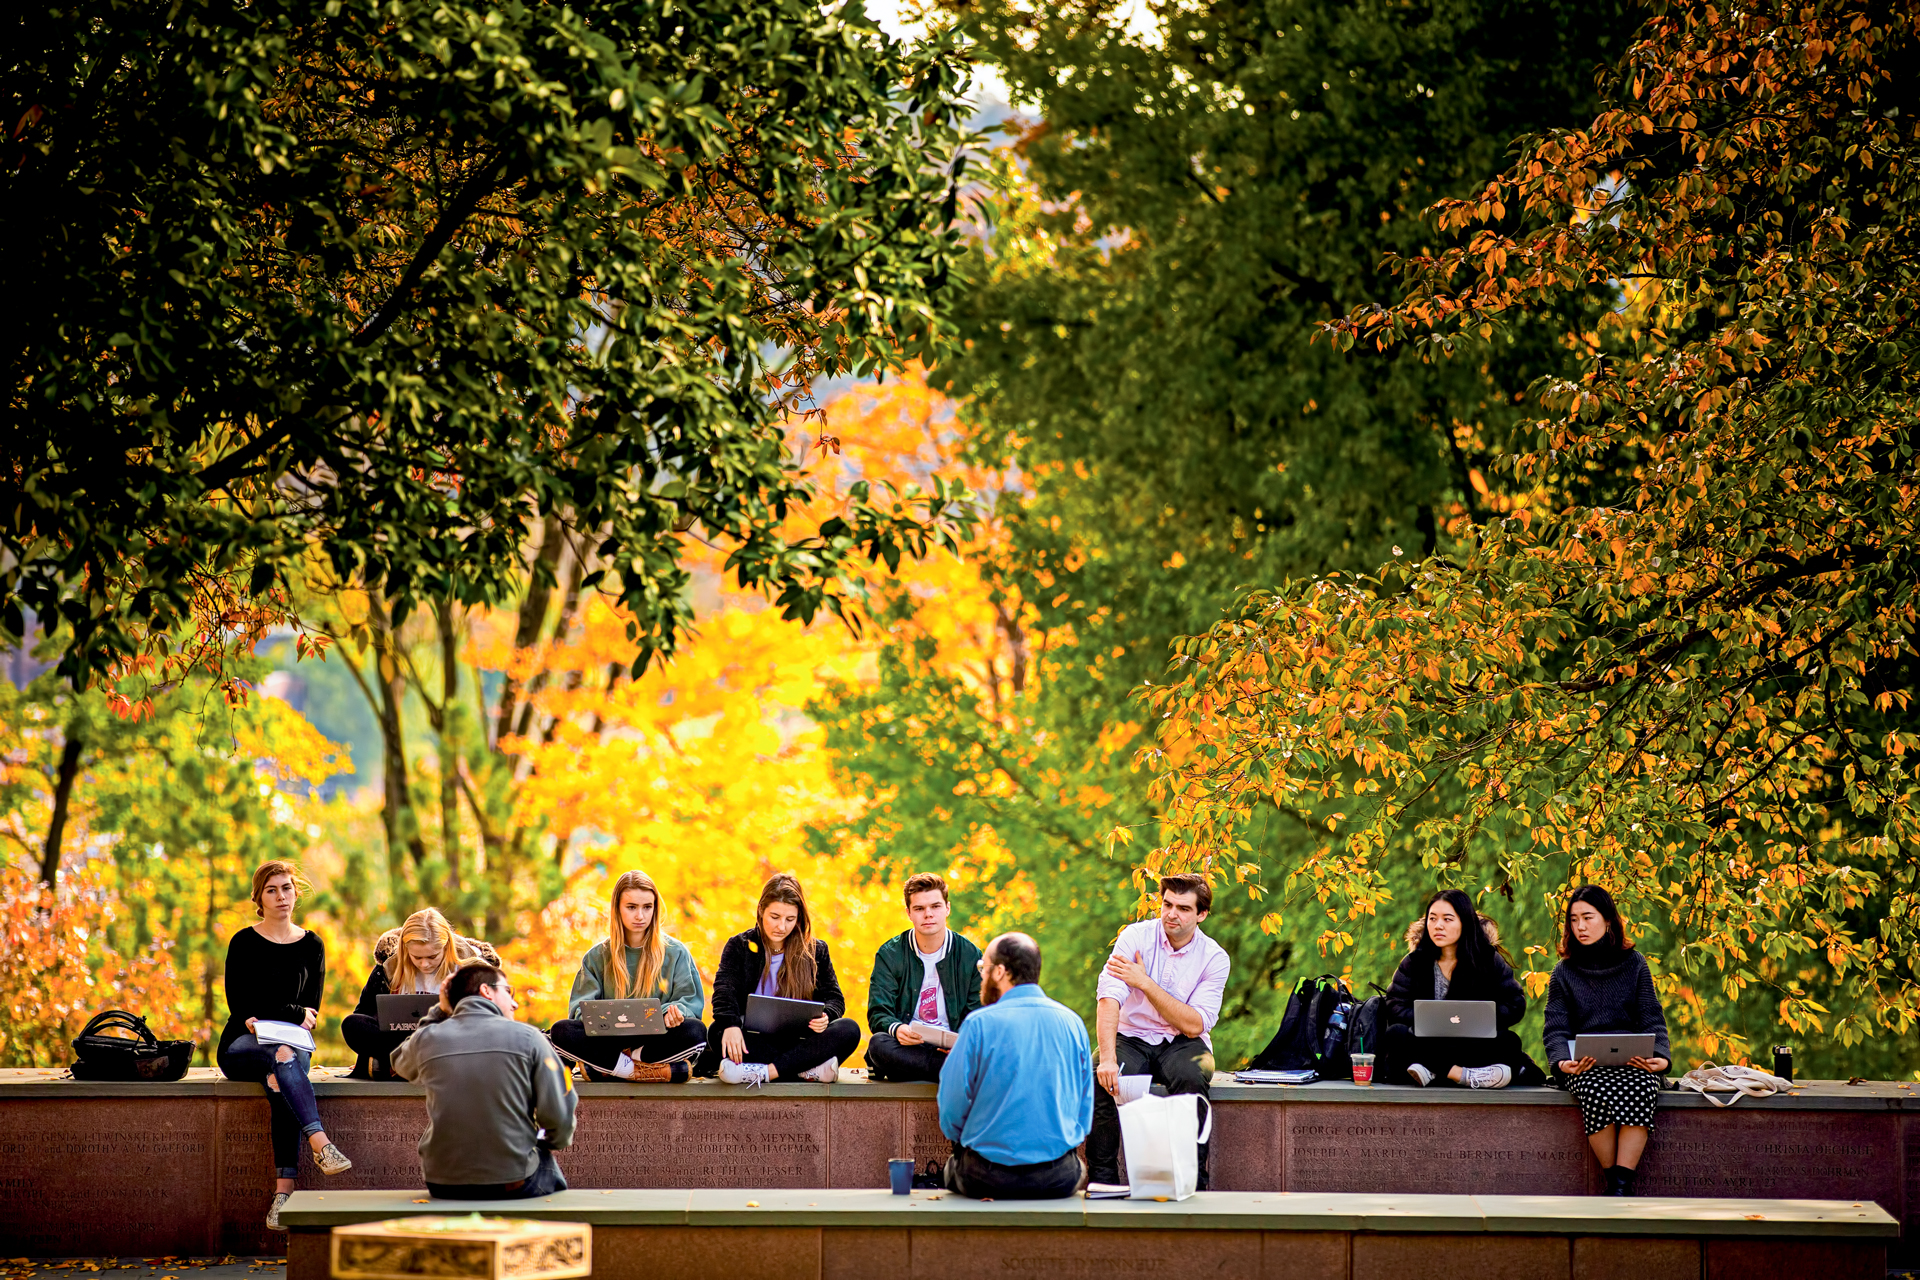 Students at Lafayette College attend a class outdoors.